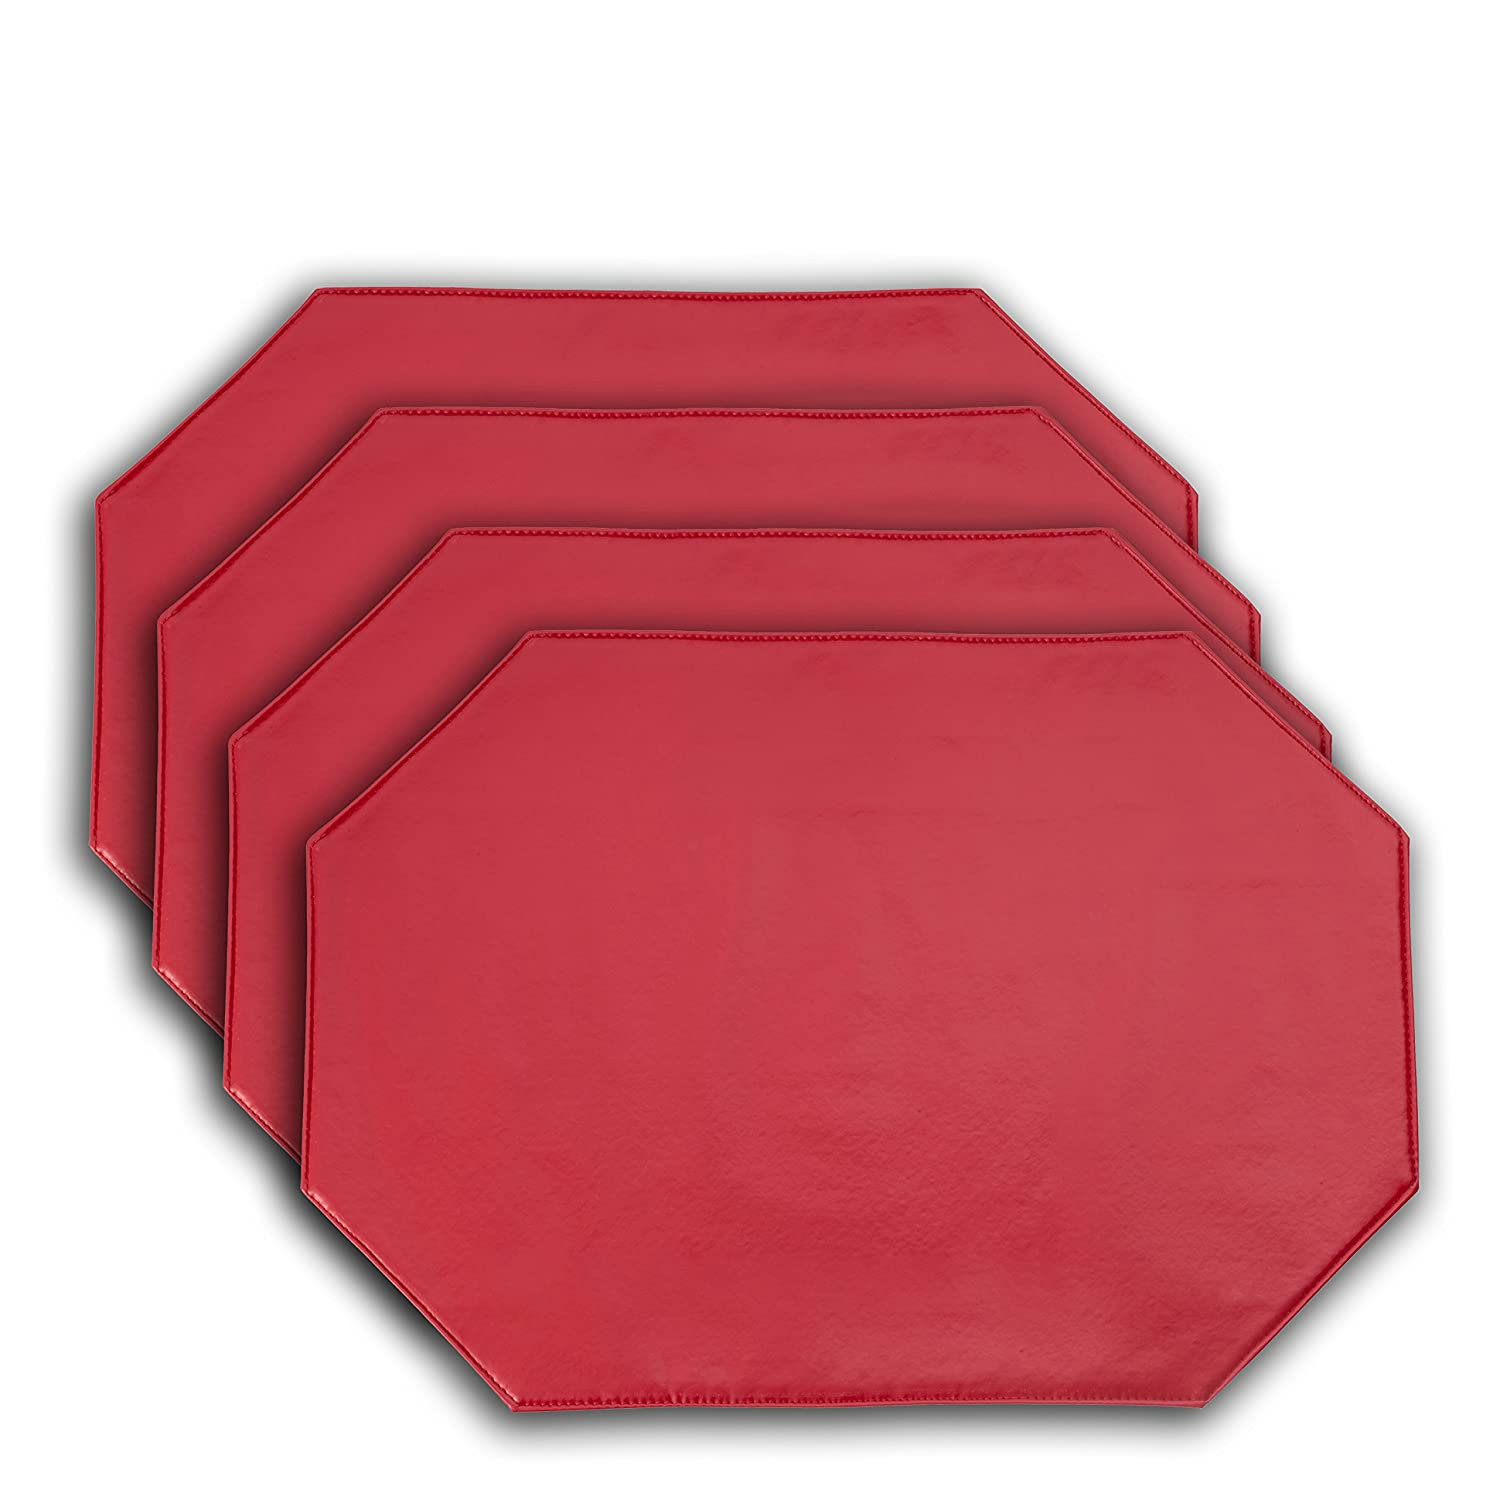 Yourtablecloth Galaxy Vinyl Table Placemat Placemats with Thicker Construction Set of 4 Similar Color Mats Heavy Duty, Premium Finish Double Layer Design Ruby Red Placemats